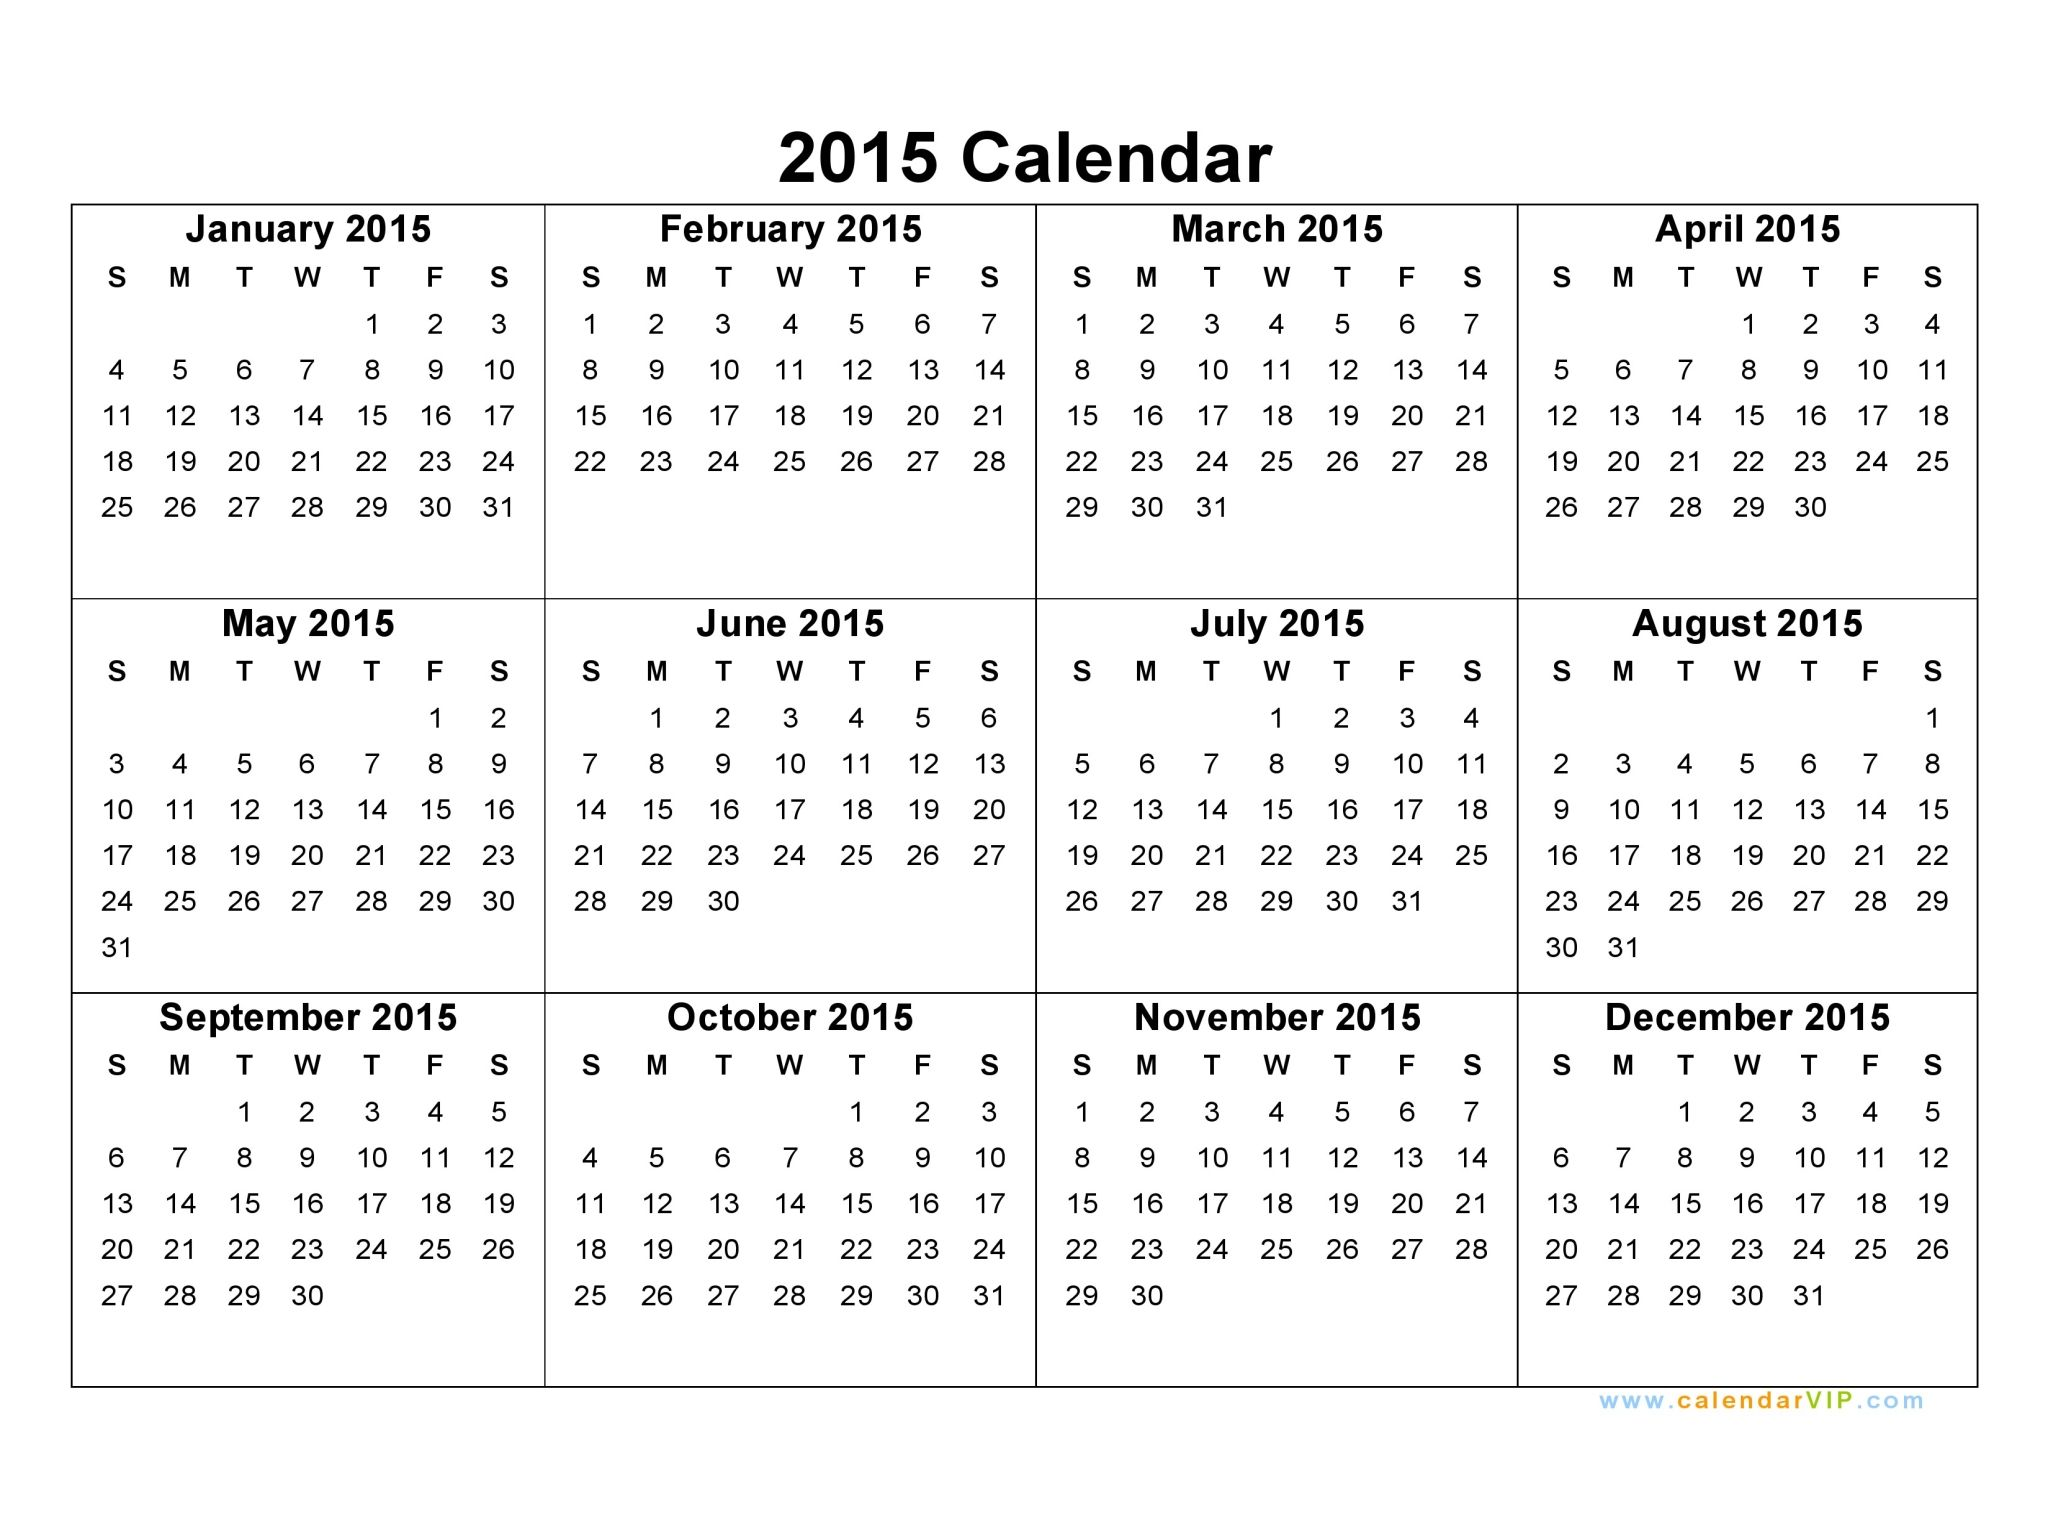 2015 calendars 2015 calendar blank printable calendar template in pdf word excel